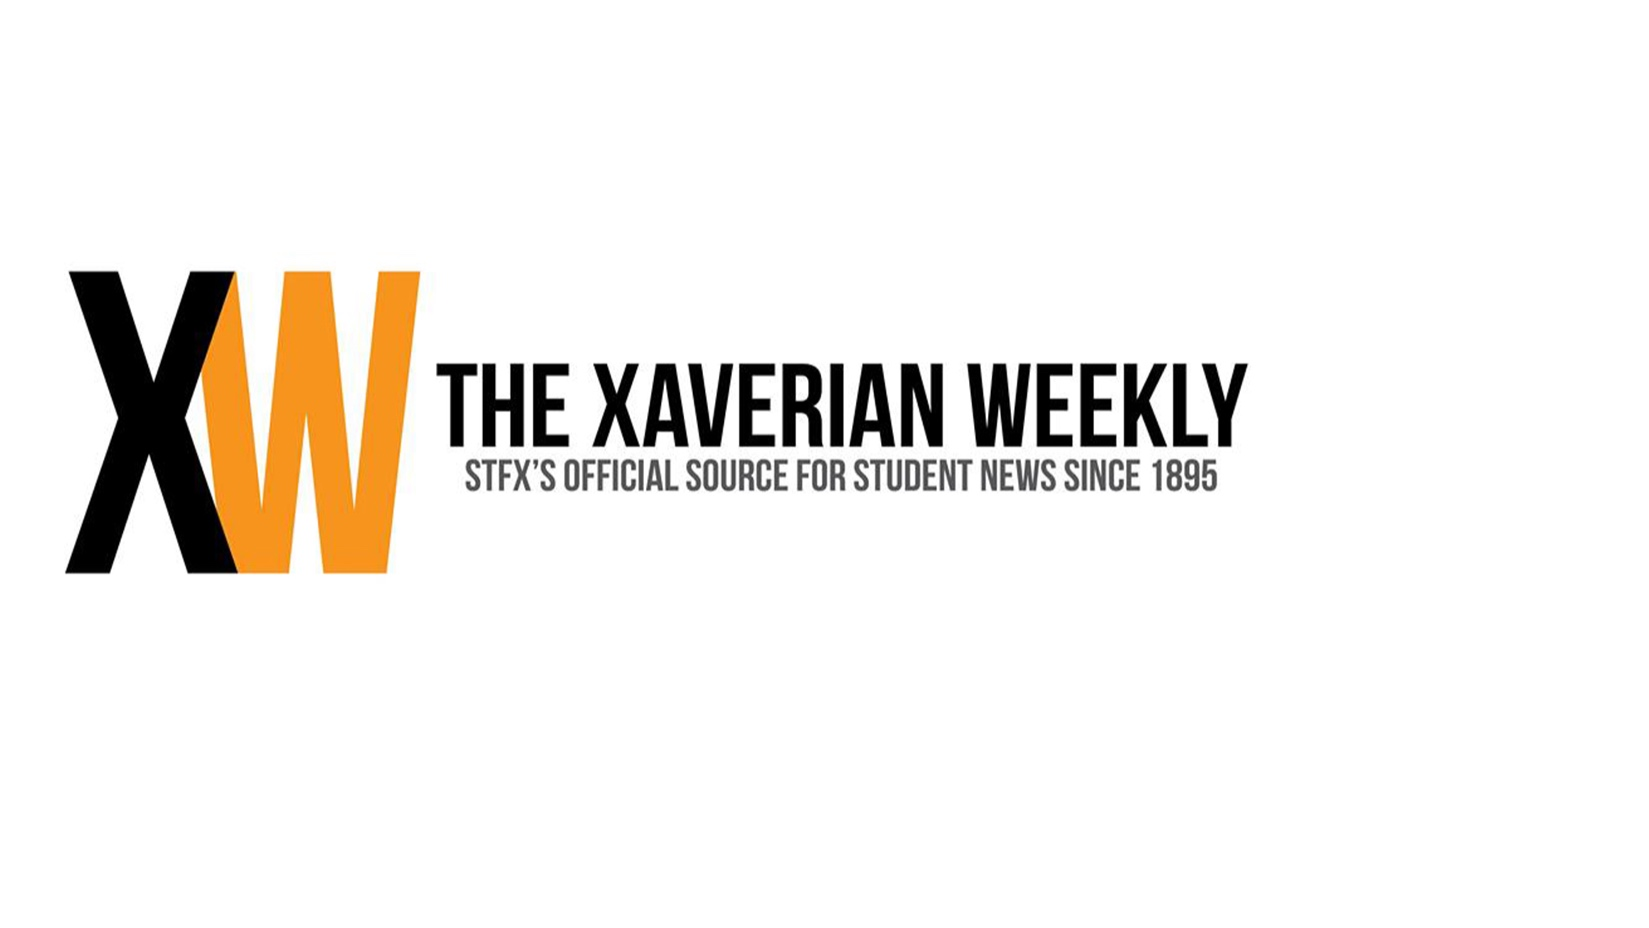 The Xaverian Weekly - The Xaverian Weekly is published on Thursdays by the Xaverian Weekly Publications Board and is editorially autonomous. We publish fifteen issues per academic year, including special issues on elections and social justice topics. Visit Xaverian.ca for more information.